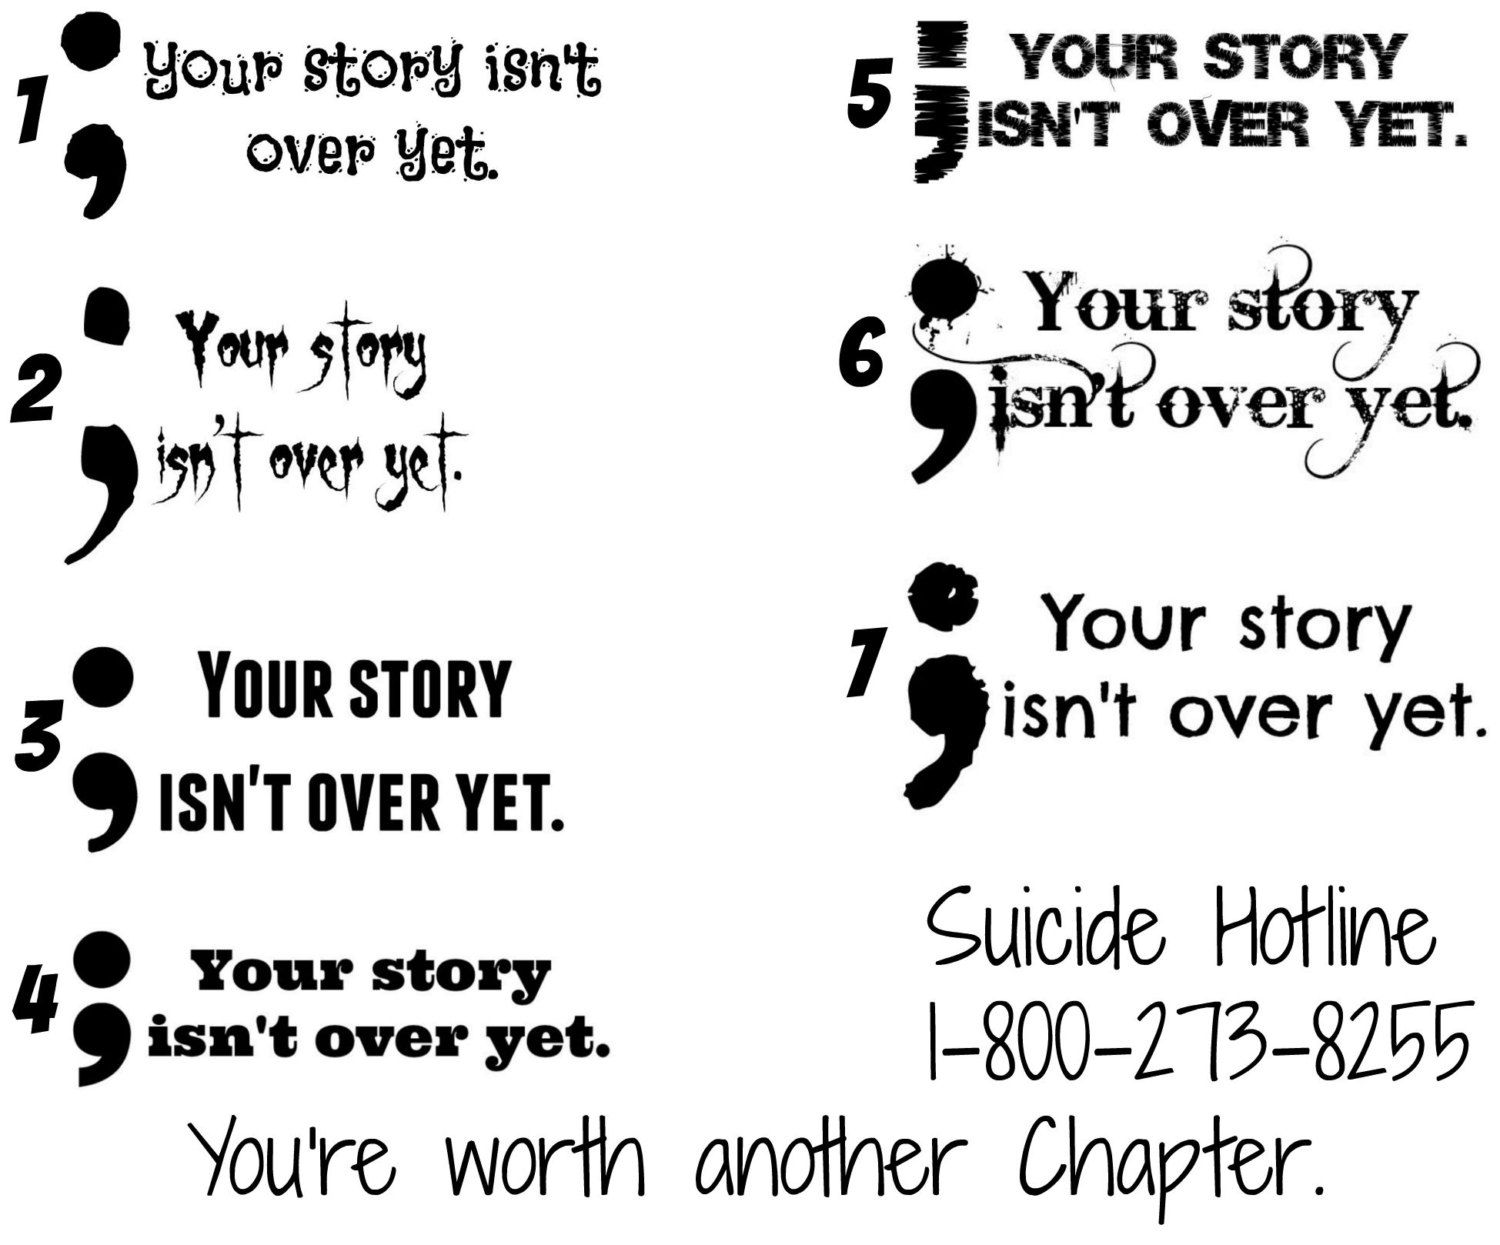 Your Story Isnt Over Yet Semicolon Temporary Tattoos Suicide